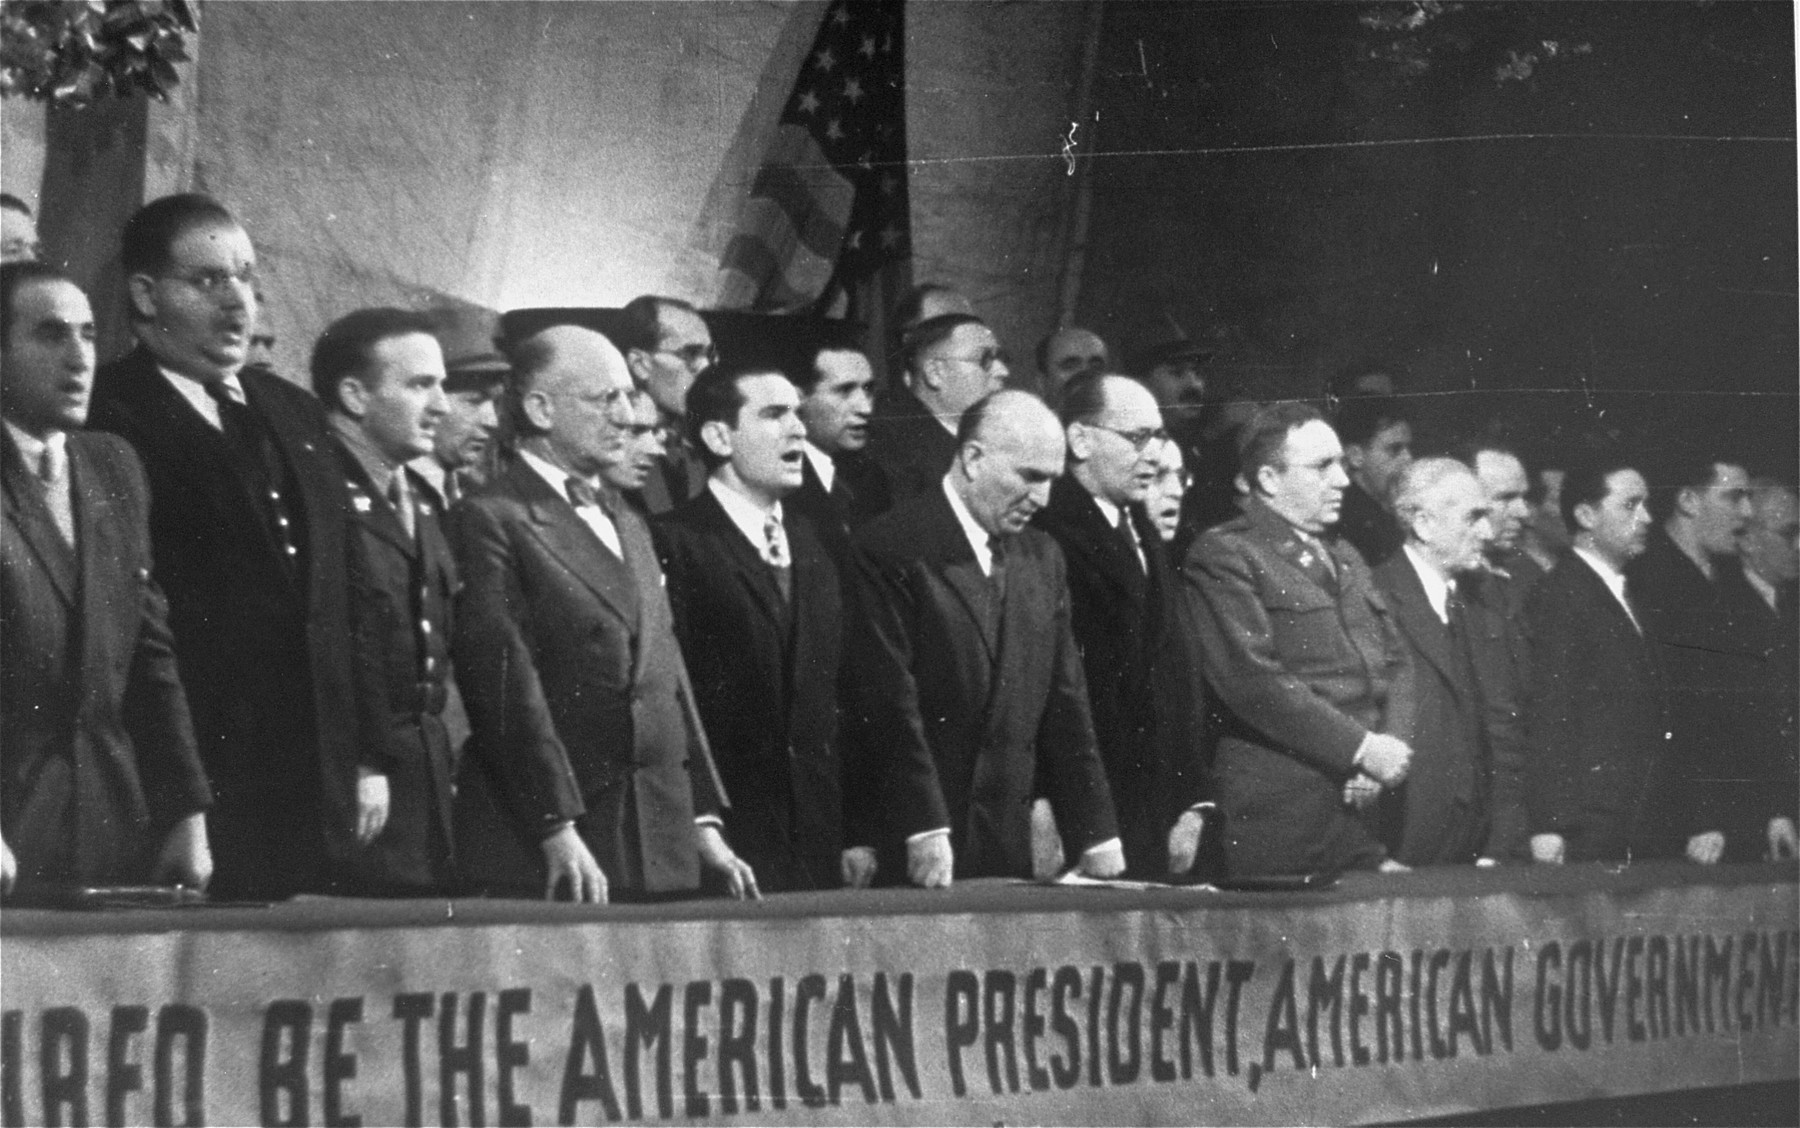 Members of the Central Committee of Liberated Jews in the U.S. Zone of Germany attend a meeting in the Prinzregenten Theater celebrating the partition of Palestine.    Among those pictured is Dawid Treger, chairman of the committee (front row center, looking down).